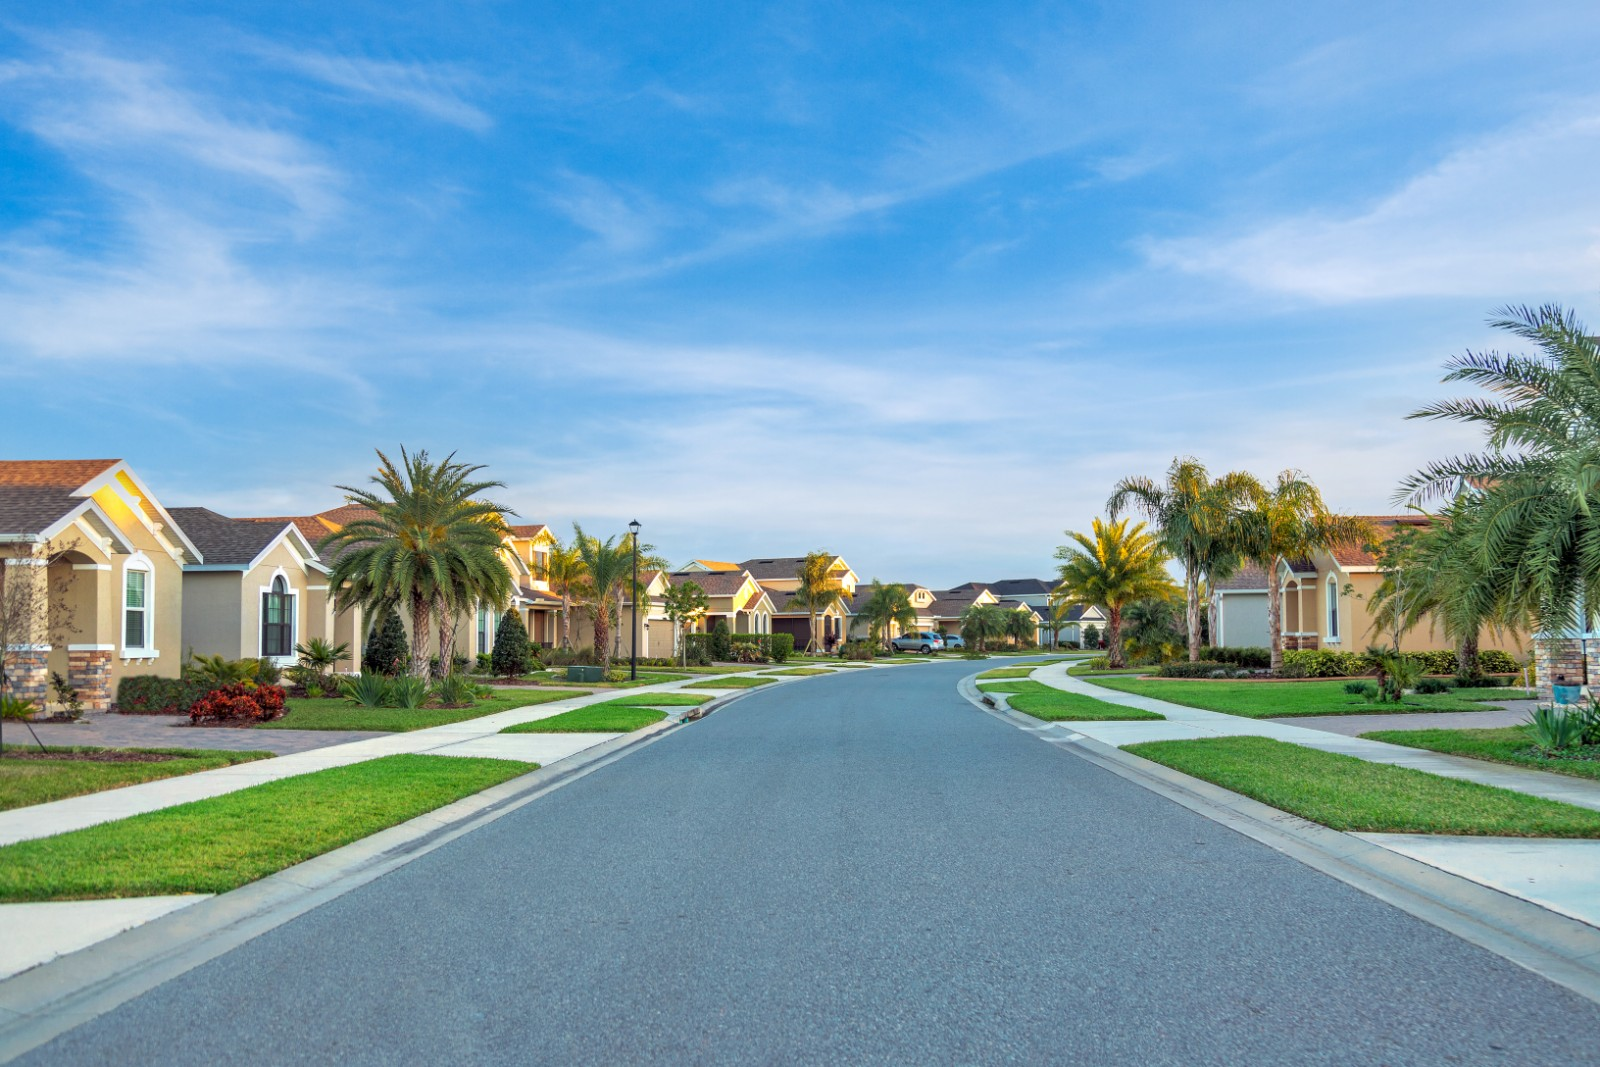 Strom Park at Viera Homes